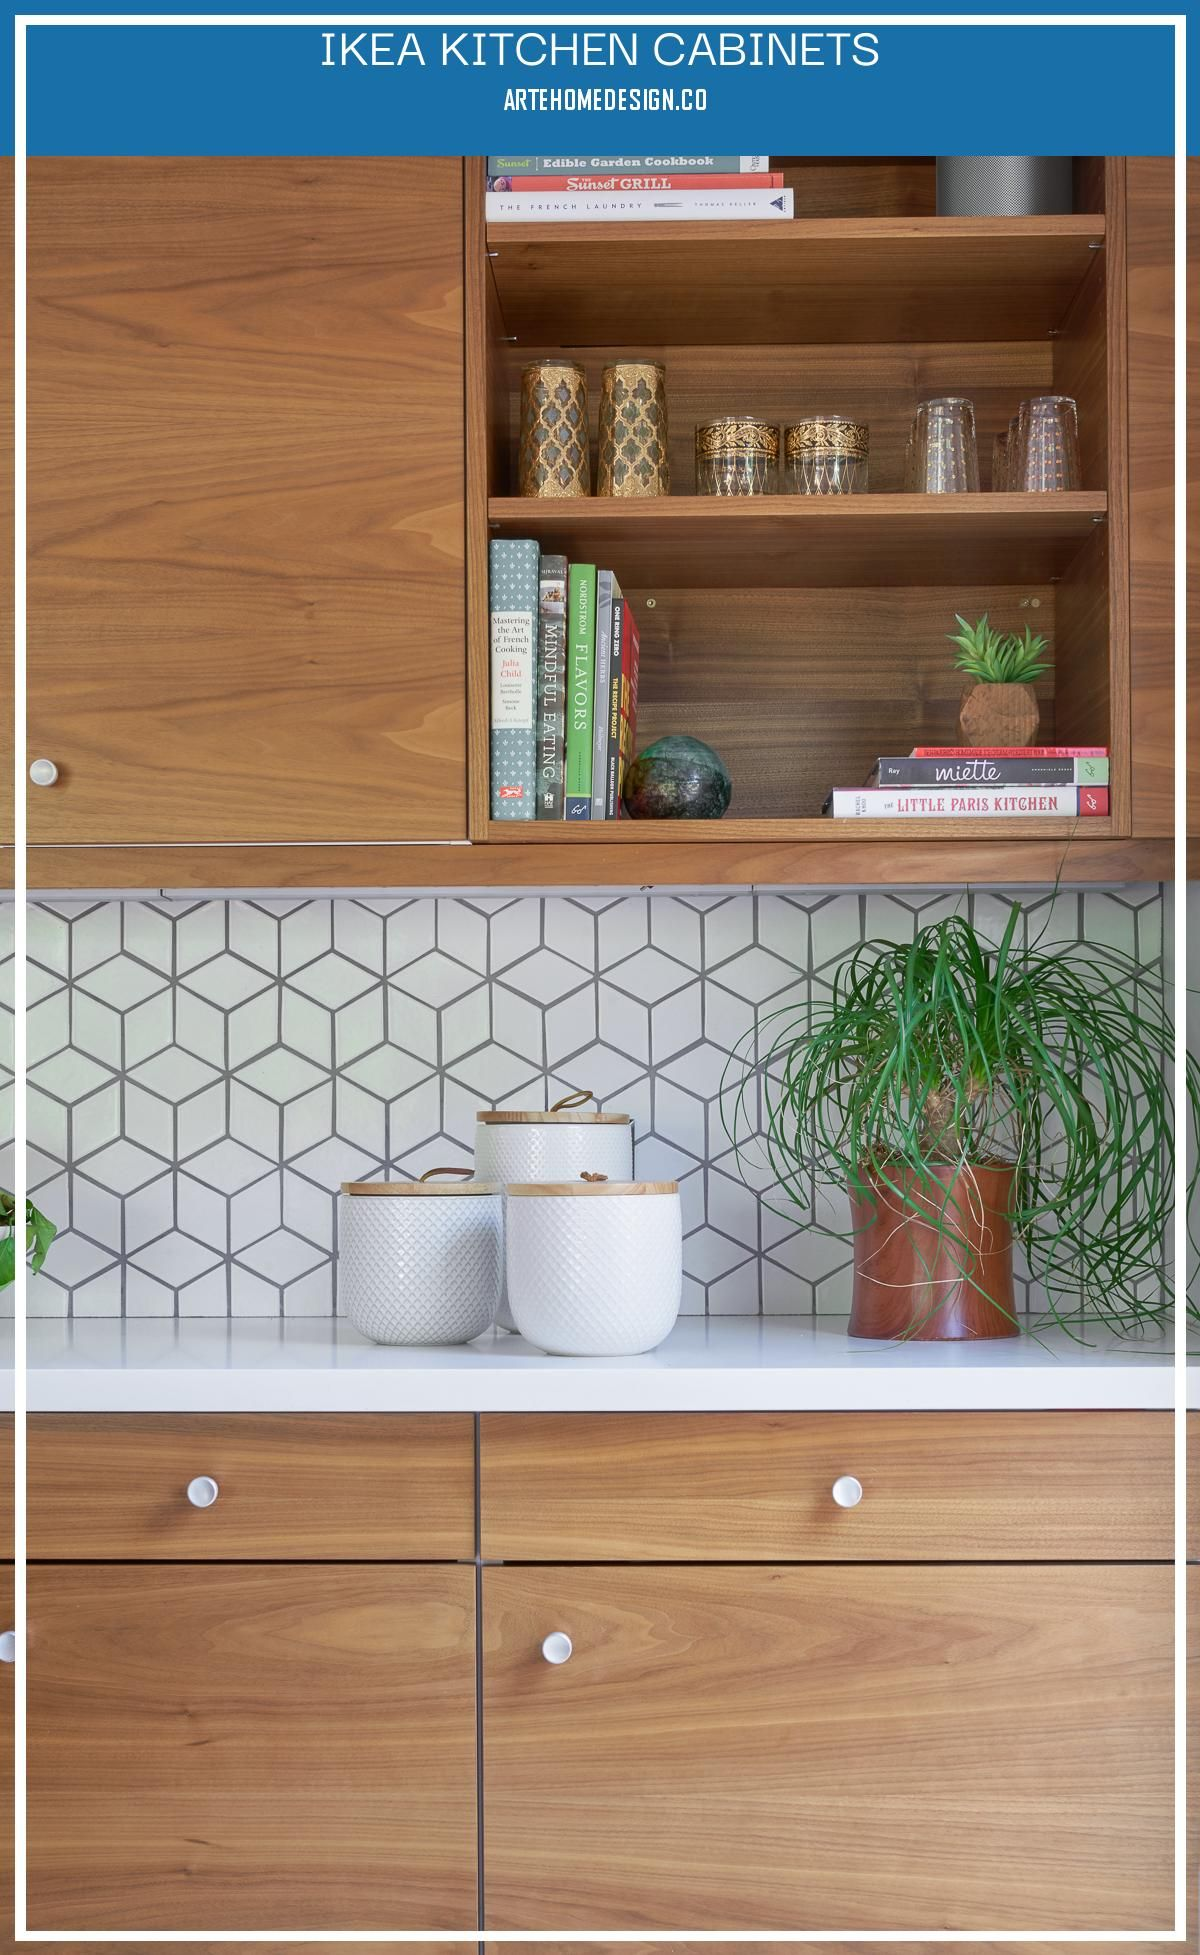 Ikea Kitchen Cabinets In 2020 Cost Of Kitchen Cabinets Design Your Kitchen Ikea Kitchen Cabinets